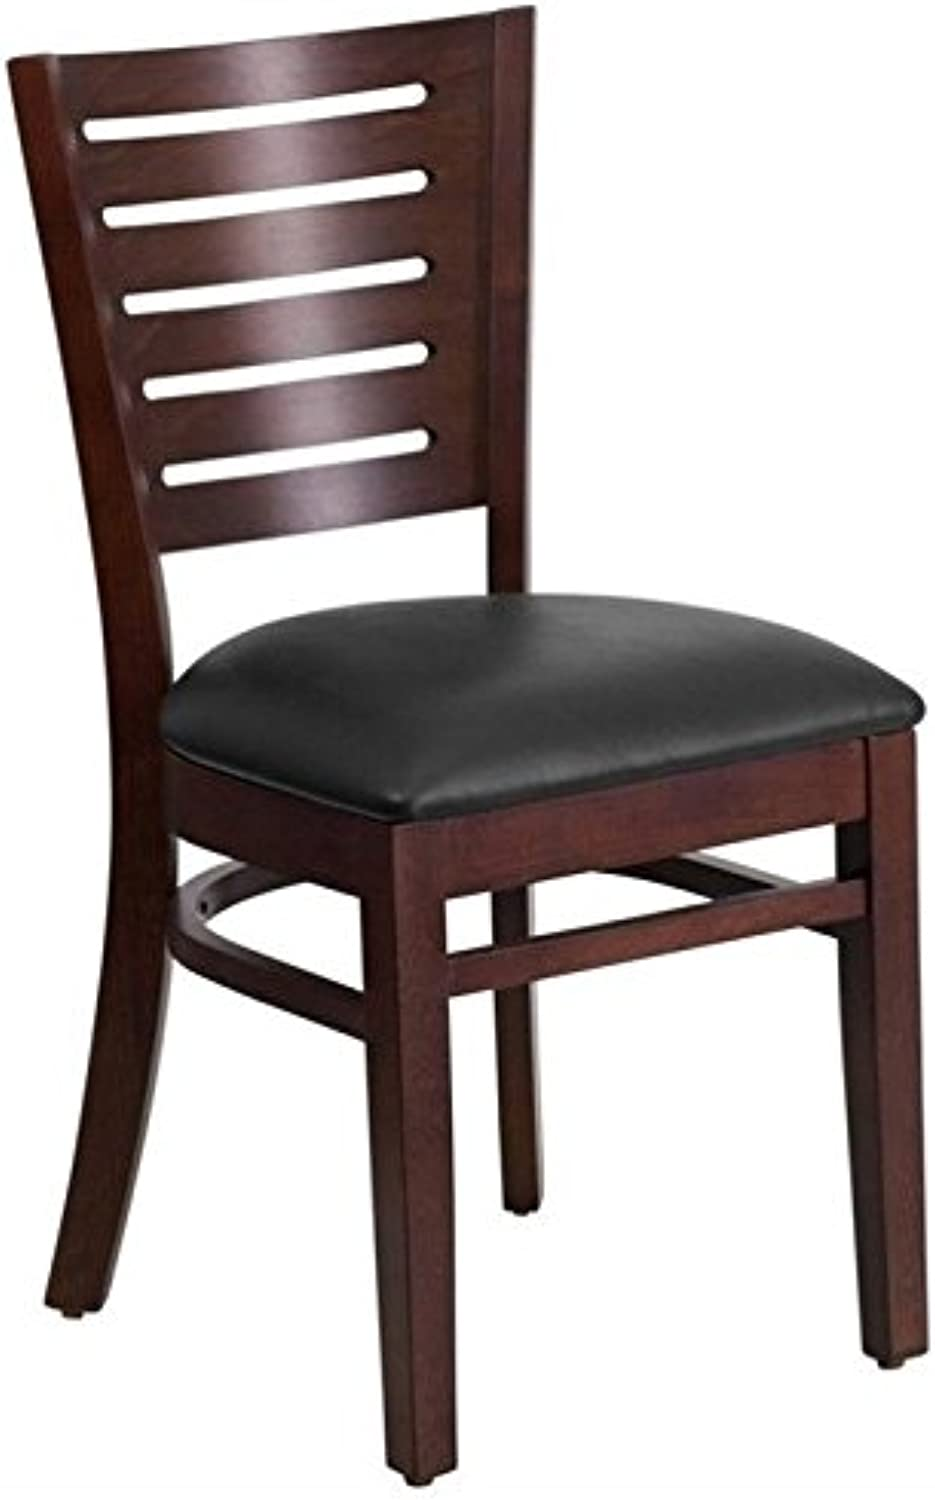 Scranton & Co Upholstered Restaurant Dining Chair in Walnut and Black